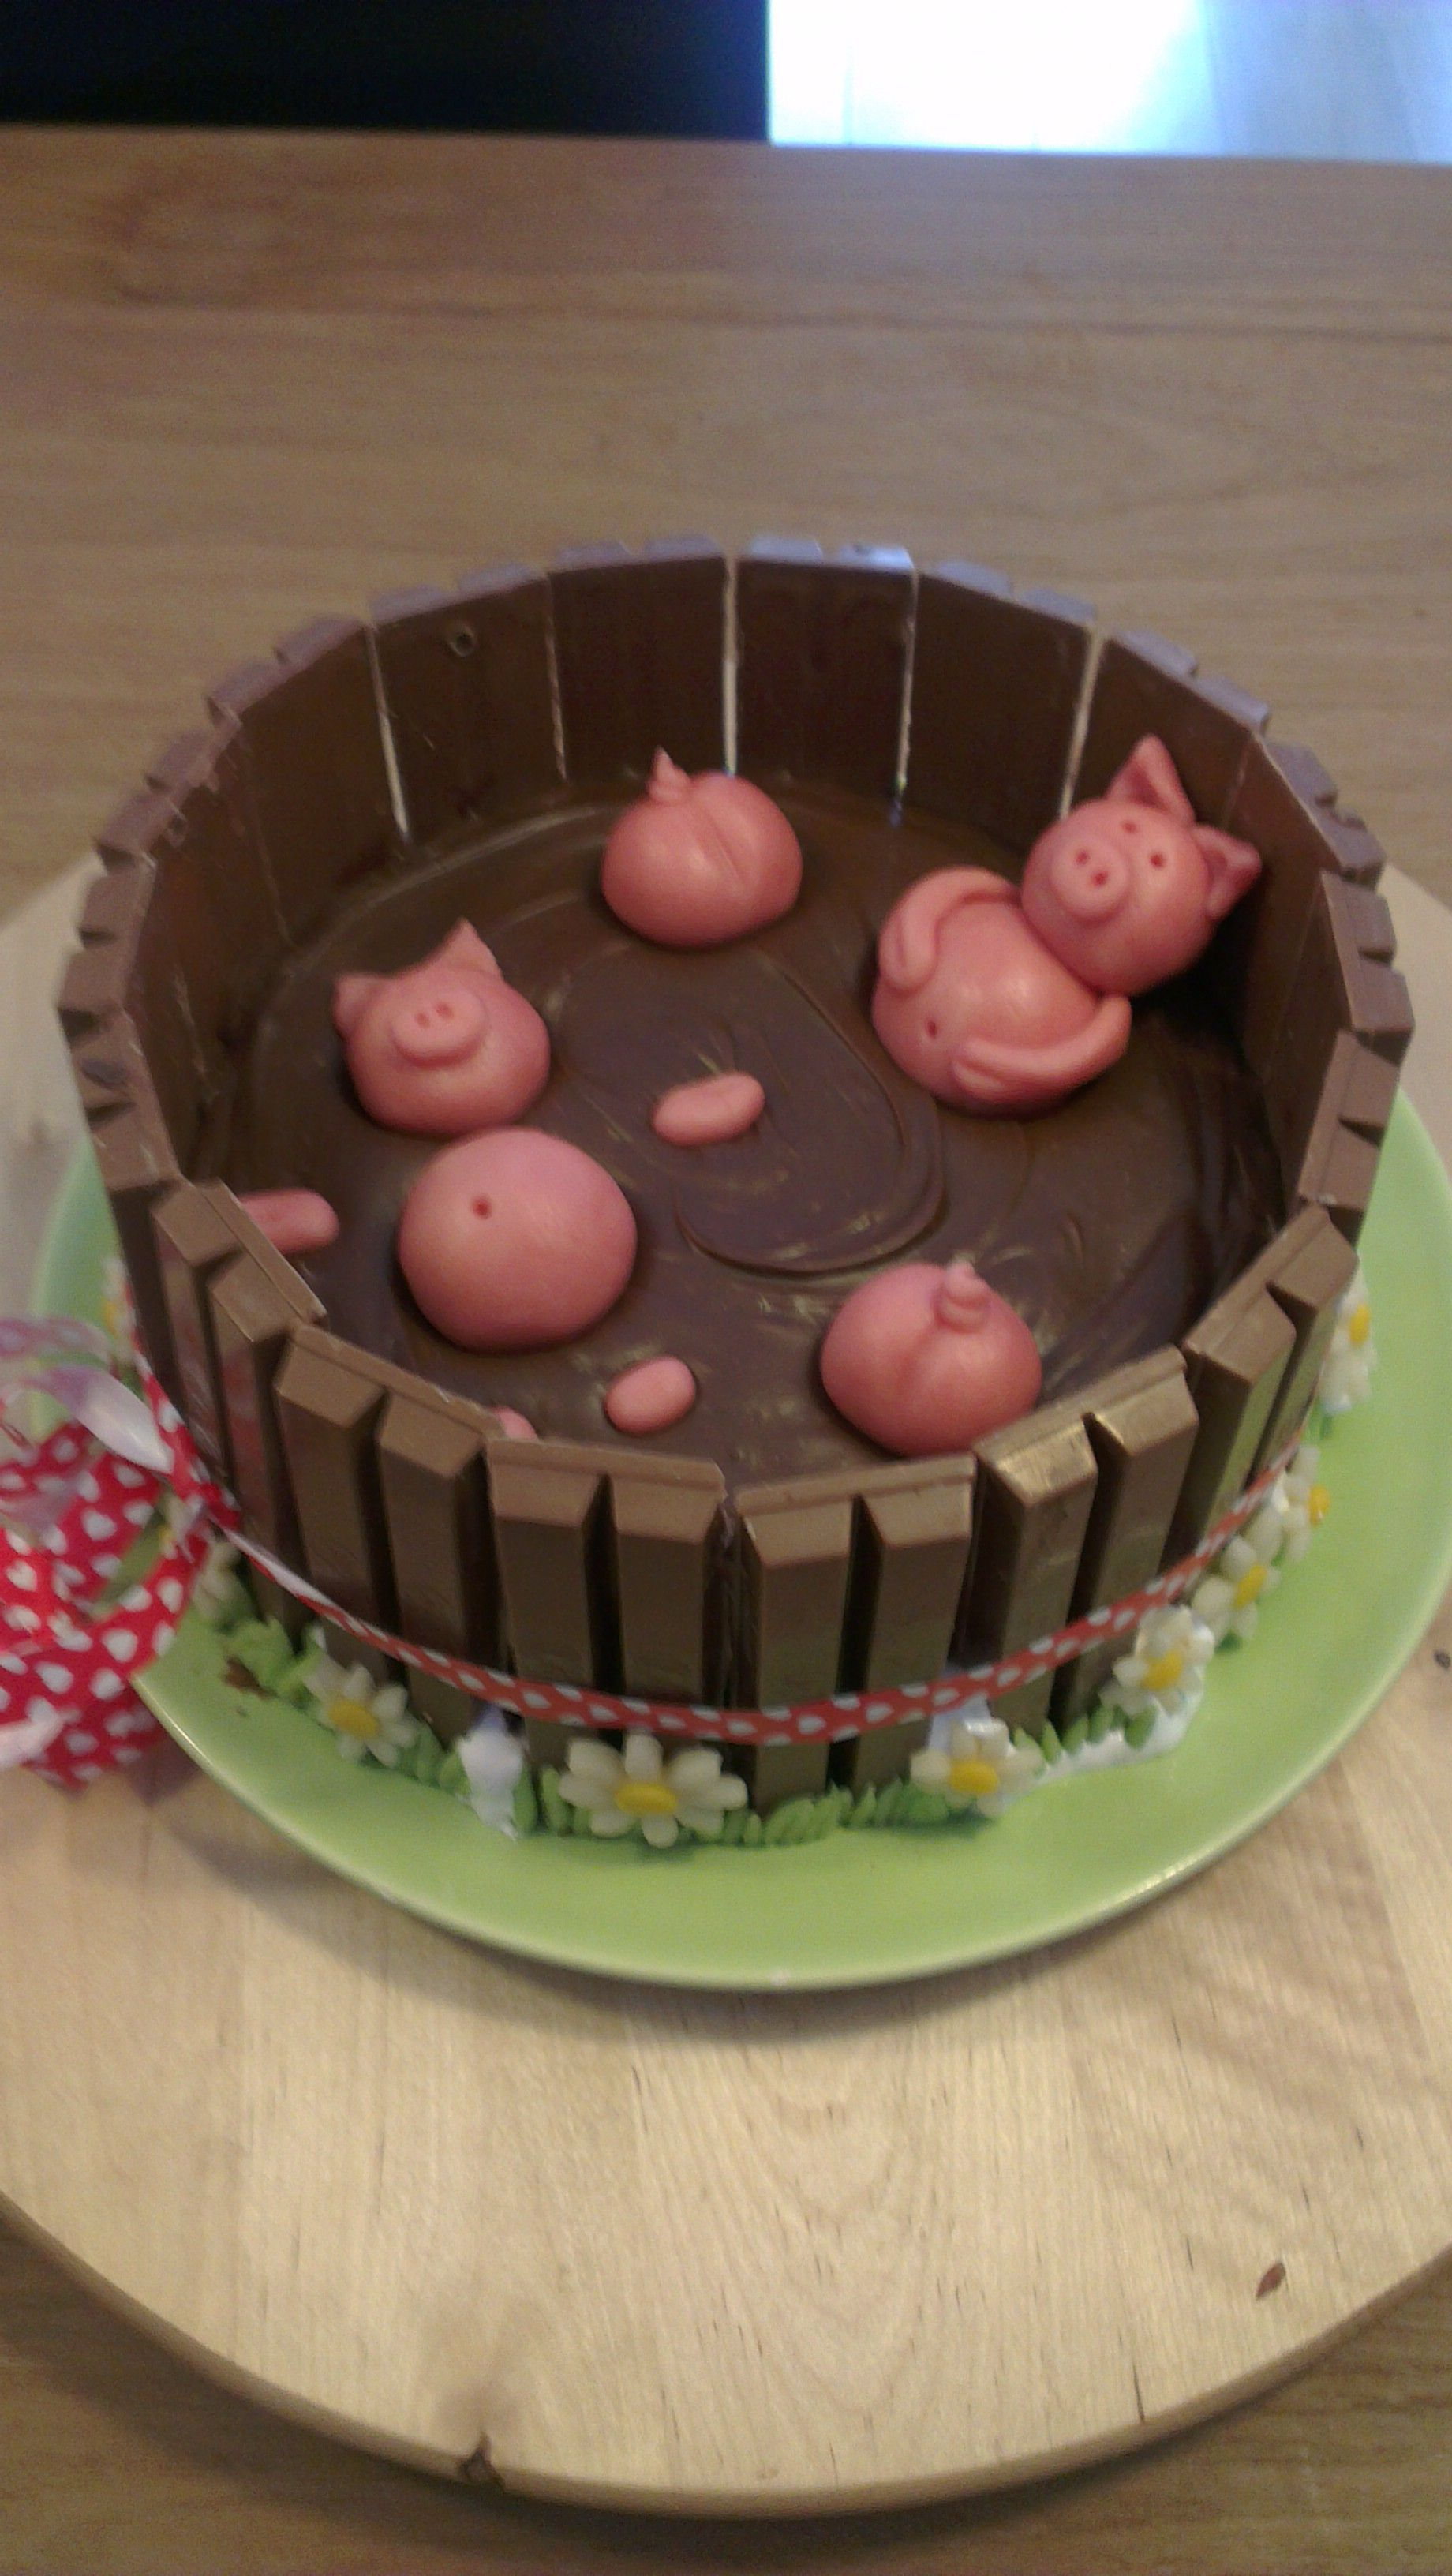 Pigs in mud cake. Not my recipe, but too cute not to post